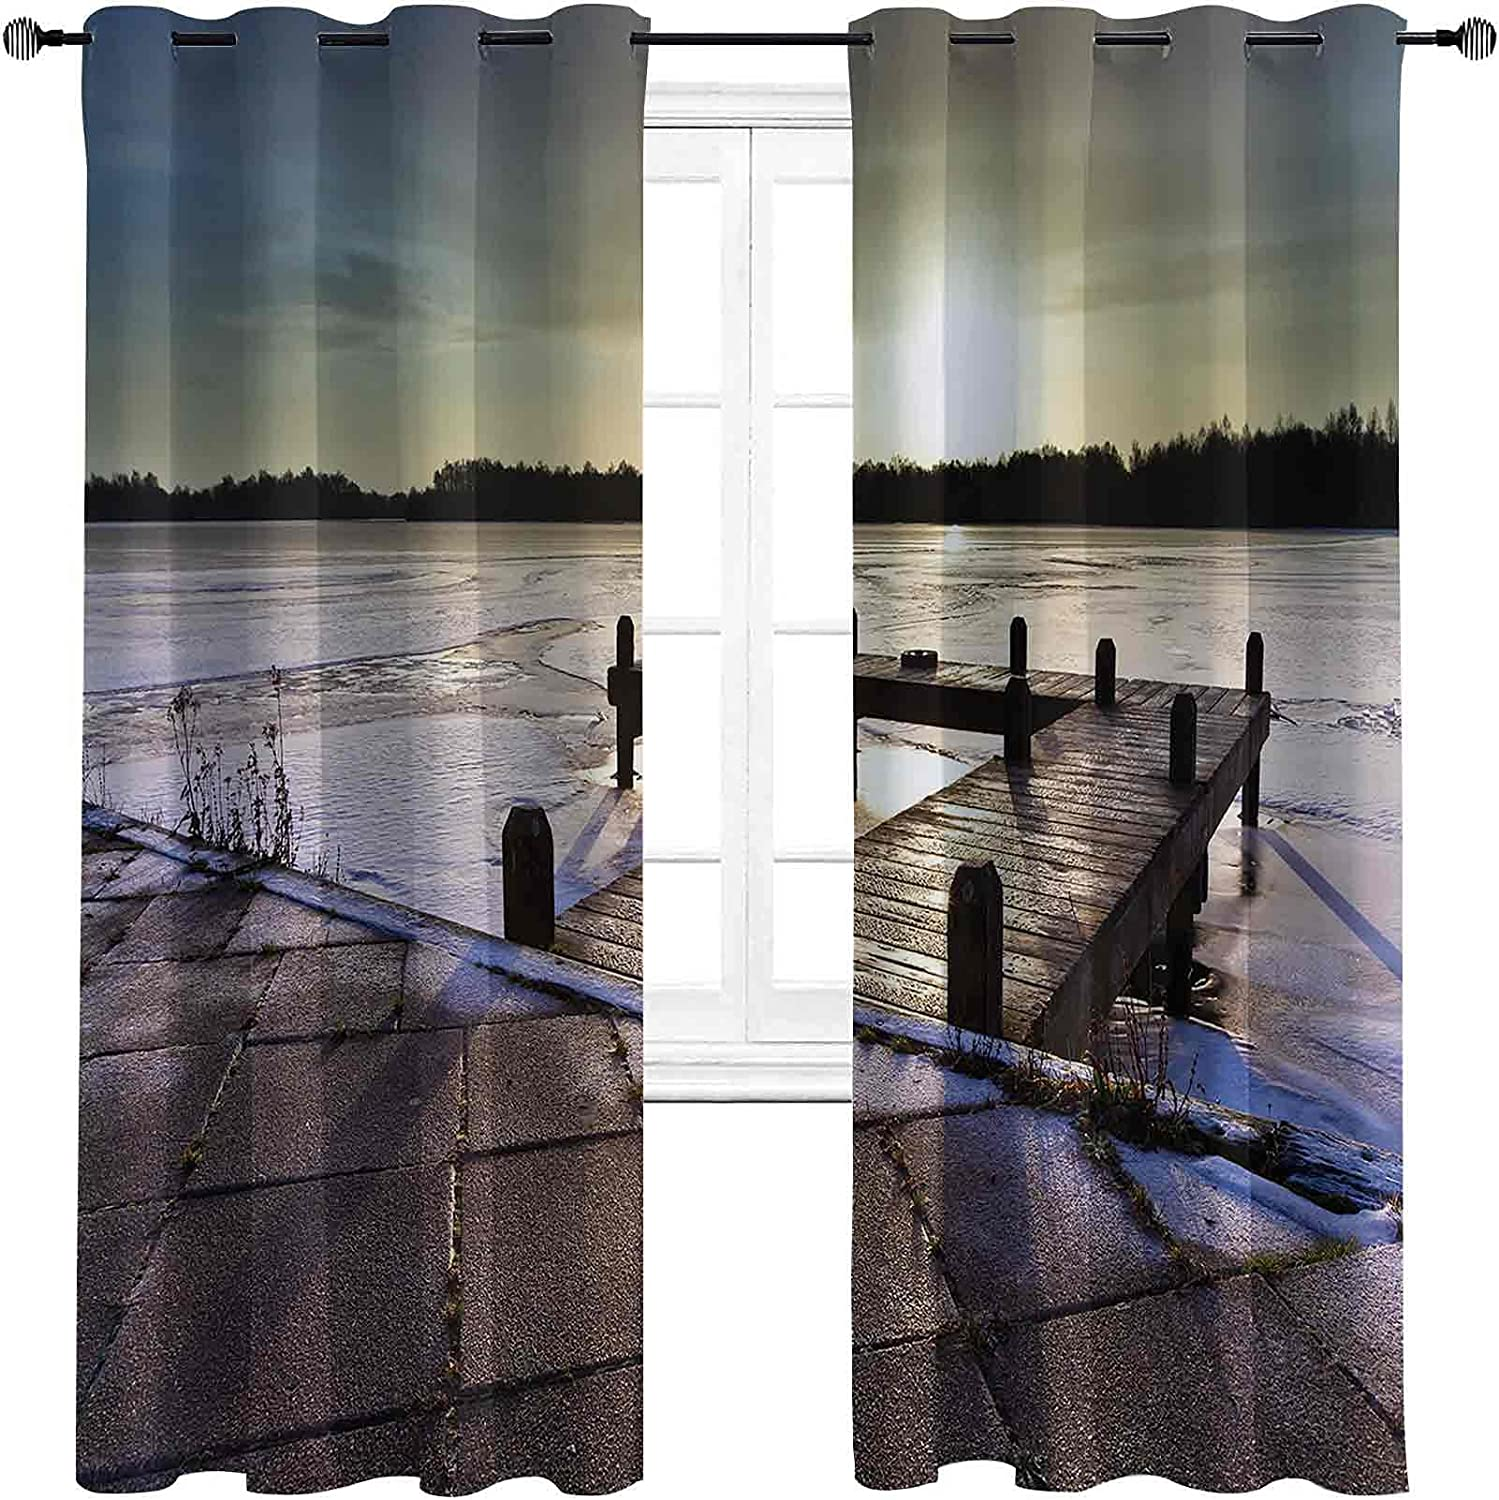 Winter Bedroom Blackout Curtains Sunrise a Above Jetty on Fro Max 87% OFF Regular discount